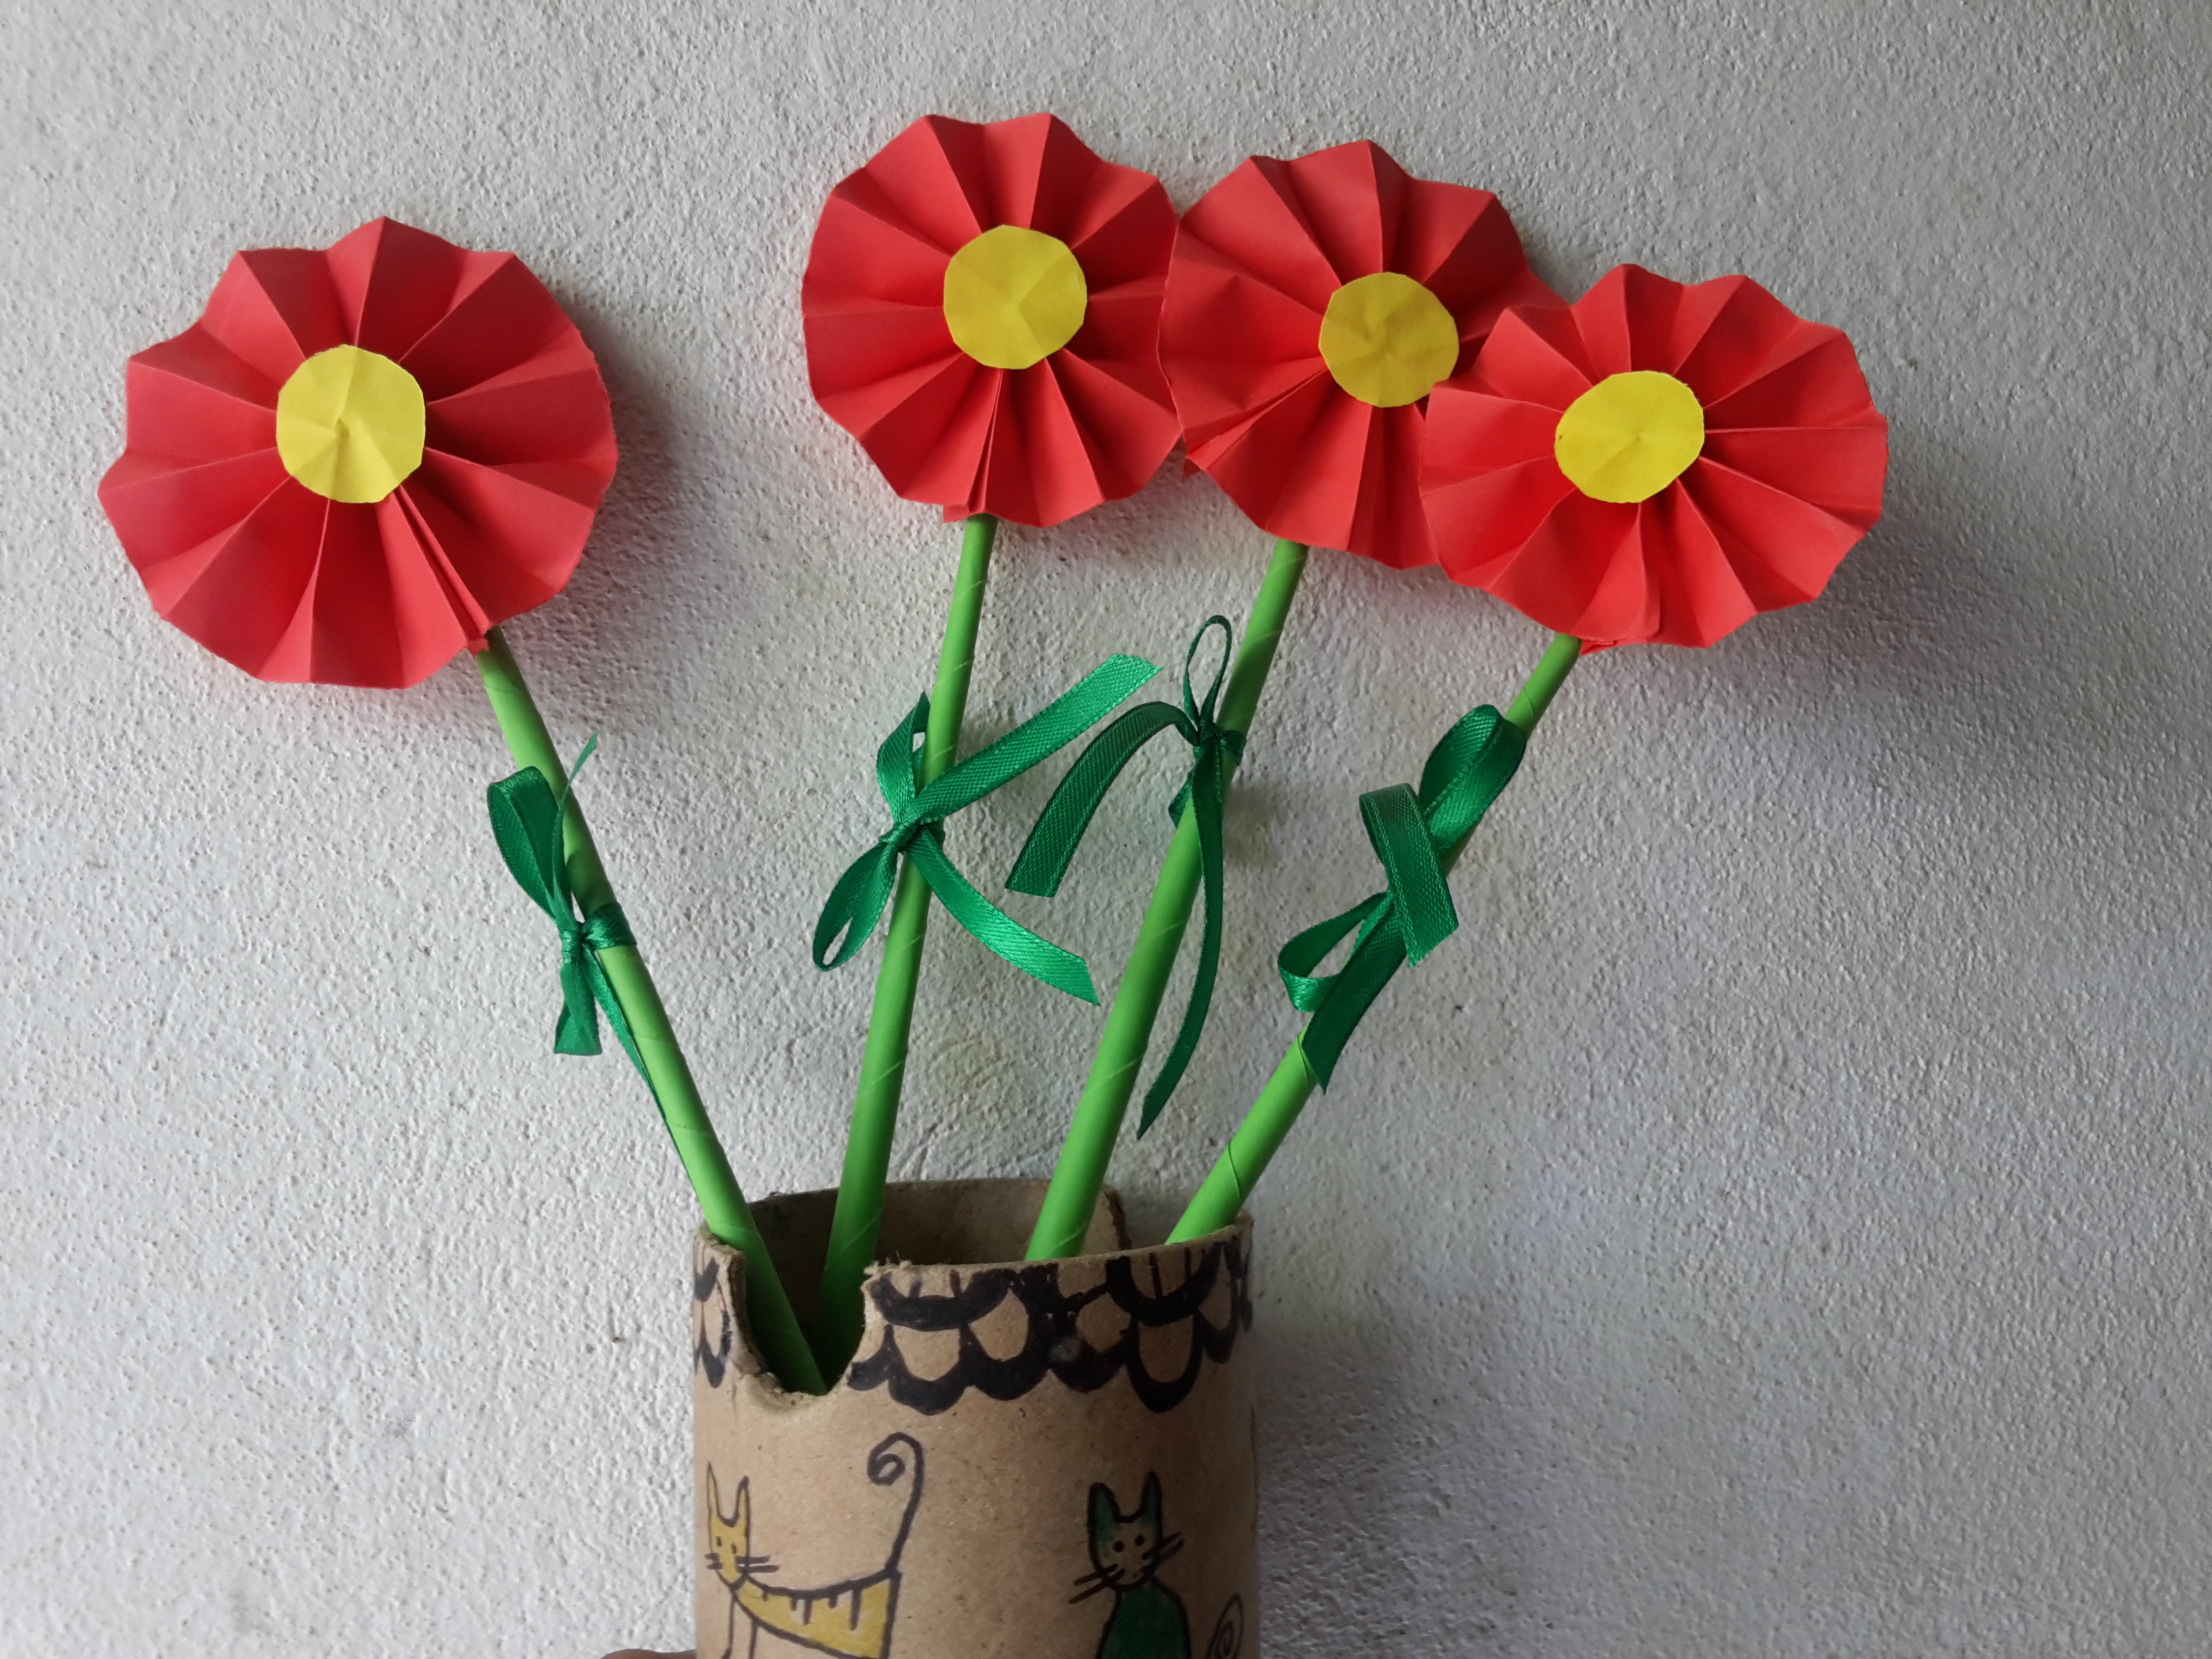 Home crafts you can make with paper How To Make Easy Paper Decorations For Your Room Flisol Home